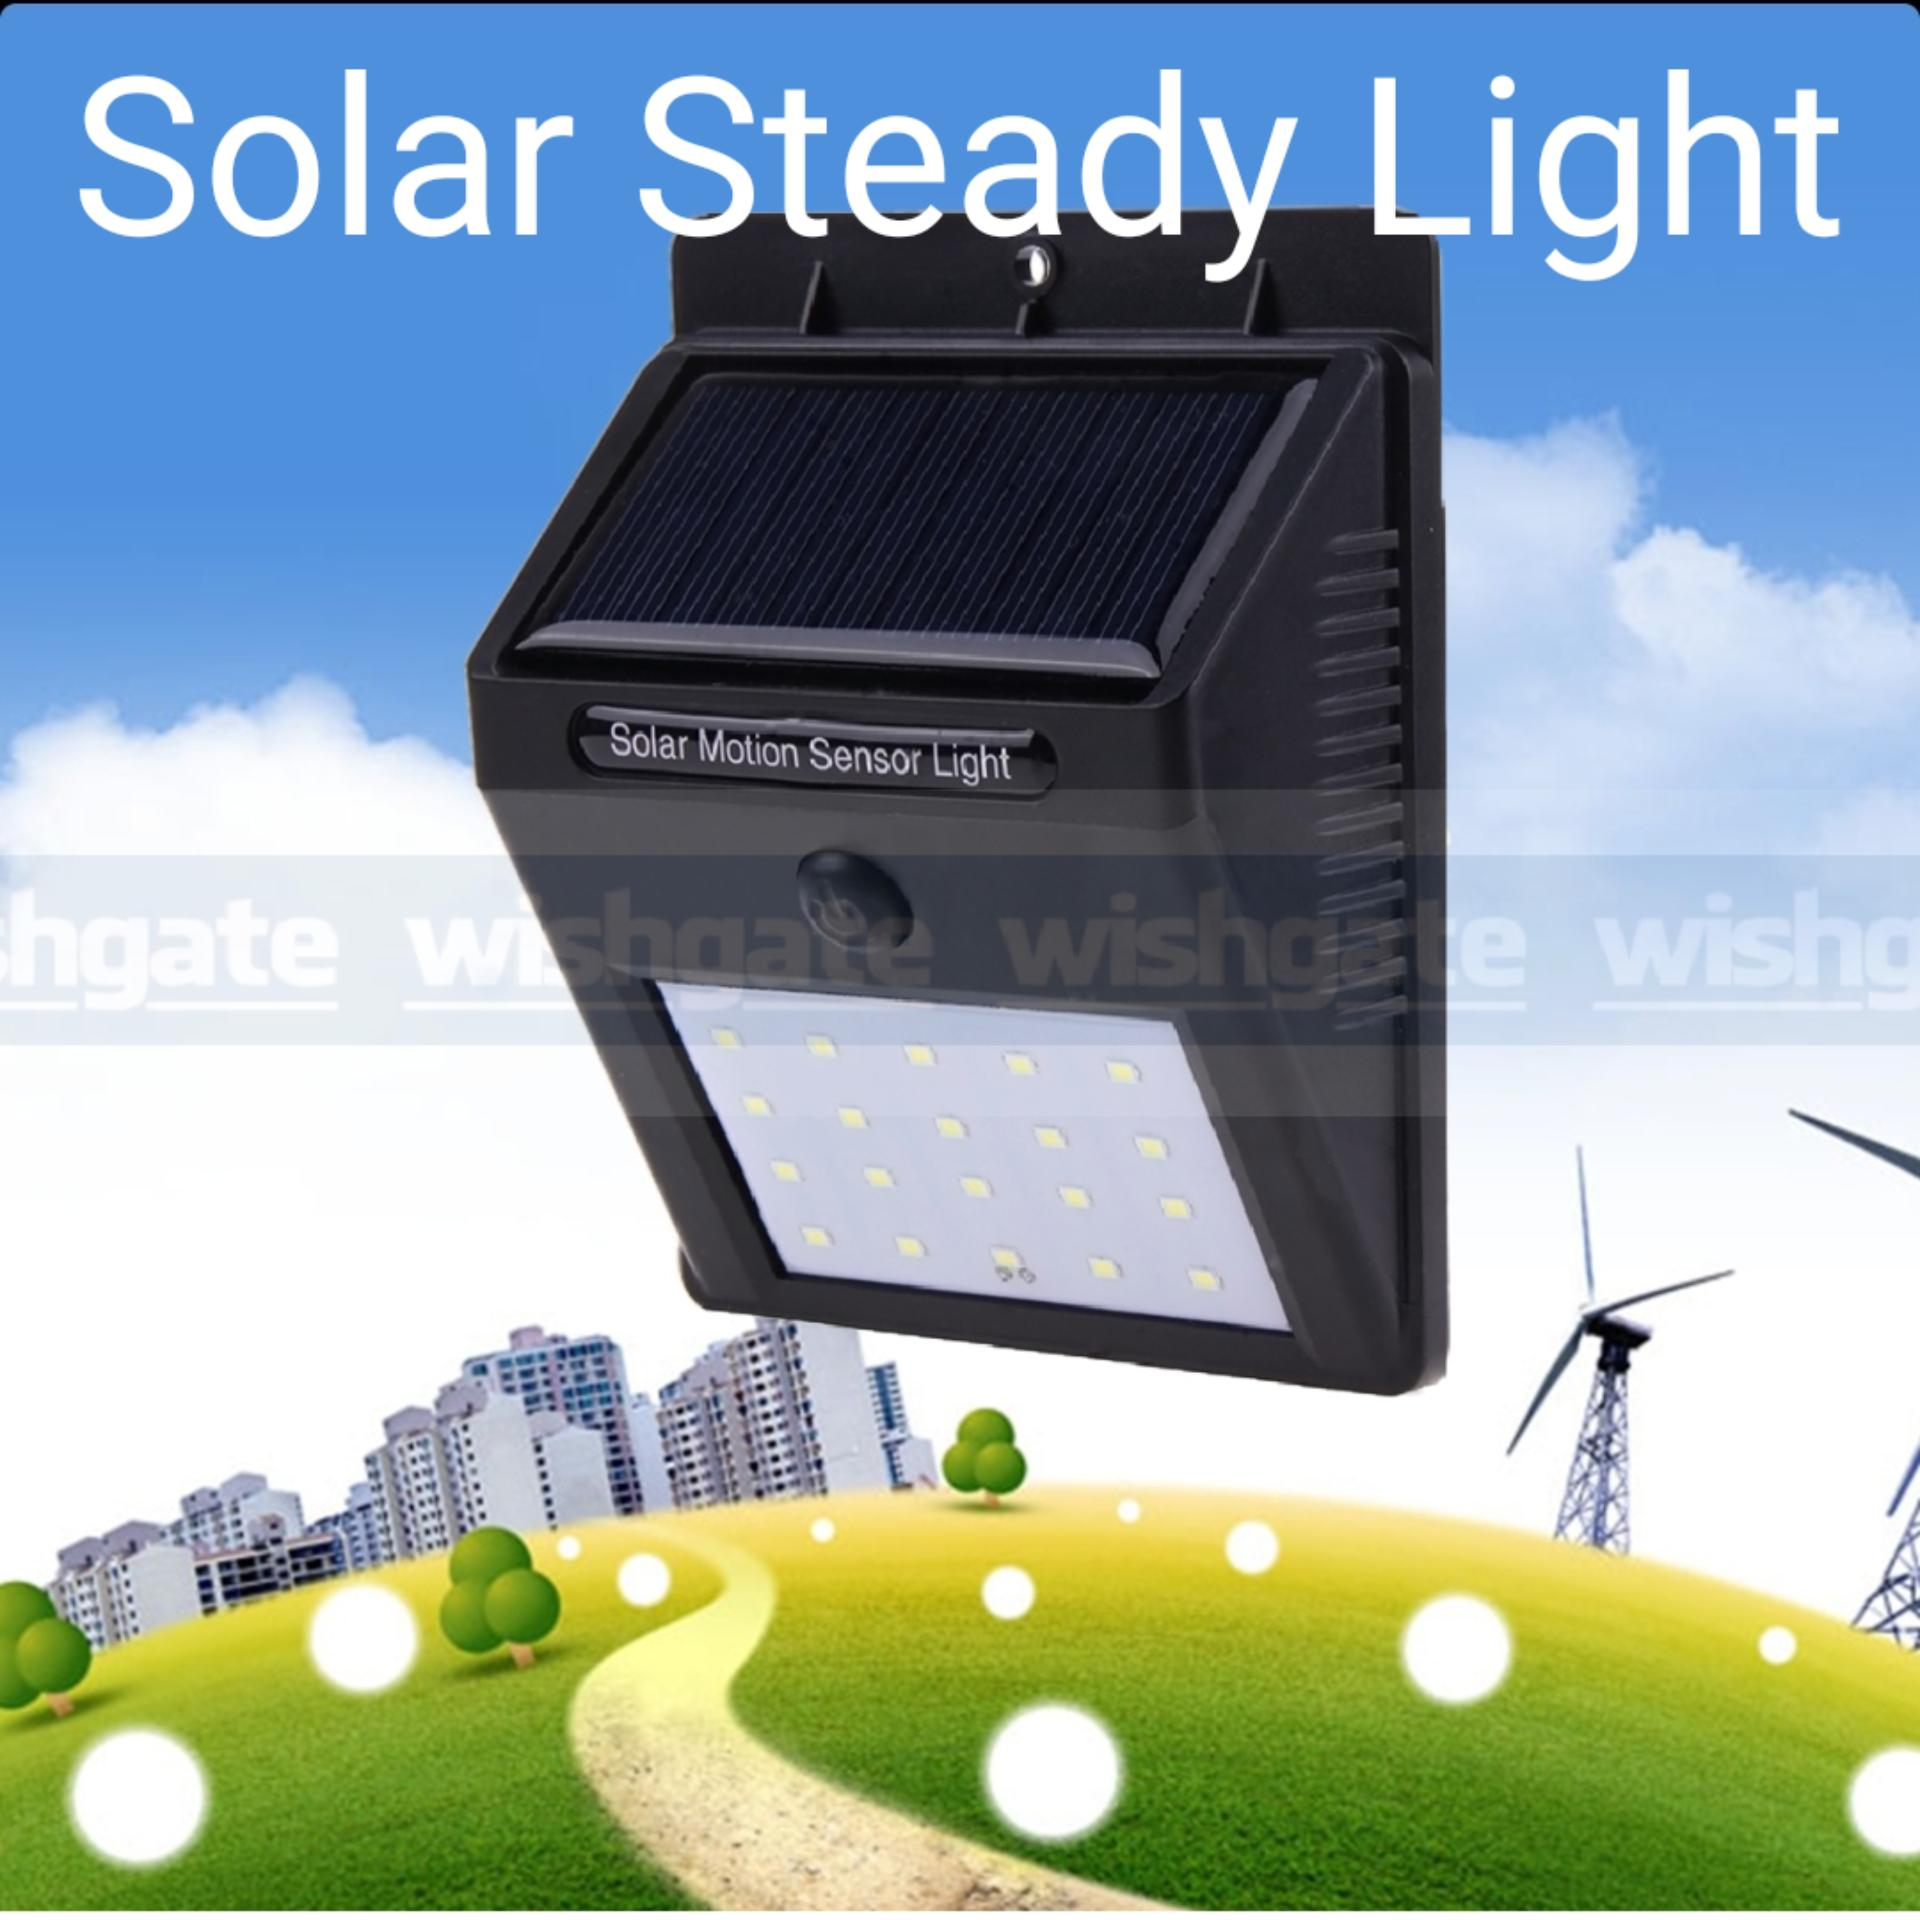 Wishgate Solar Wall Light Outdoor, 20 Led Steady Night Light, Waterproof By Wishgate.